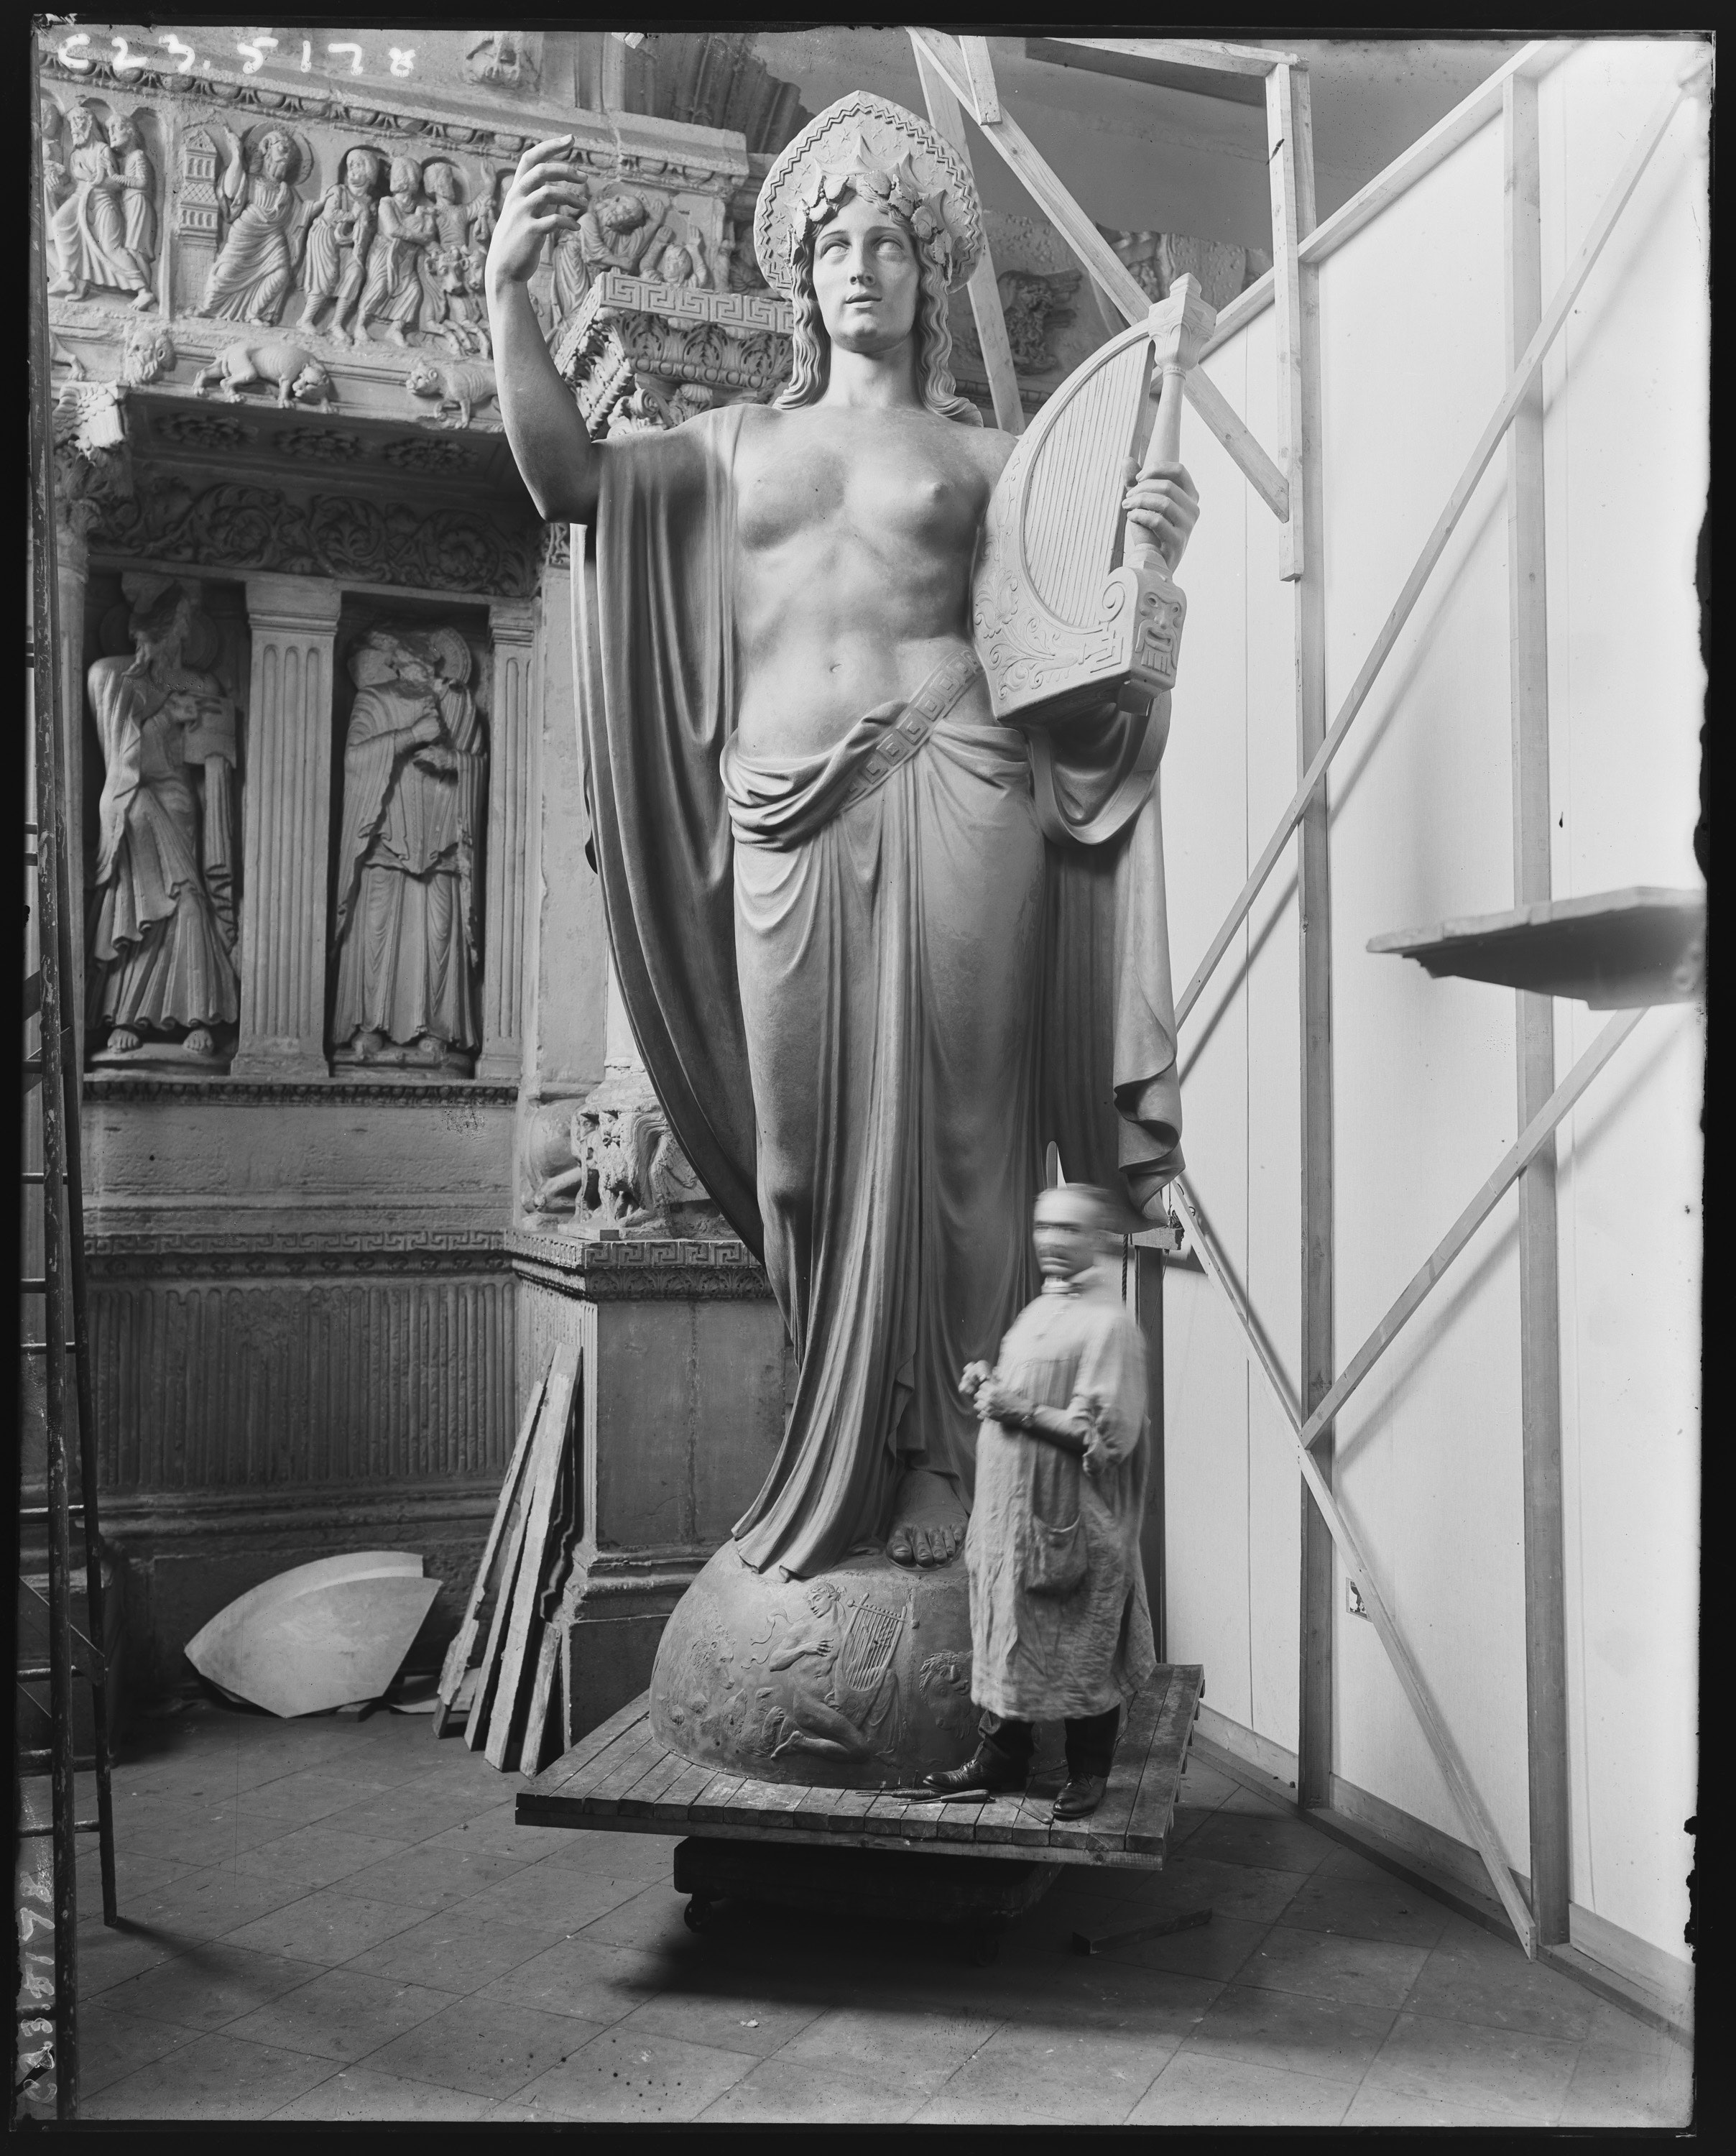 Old photo of monumental statue being installed